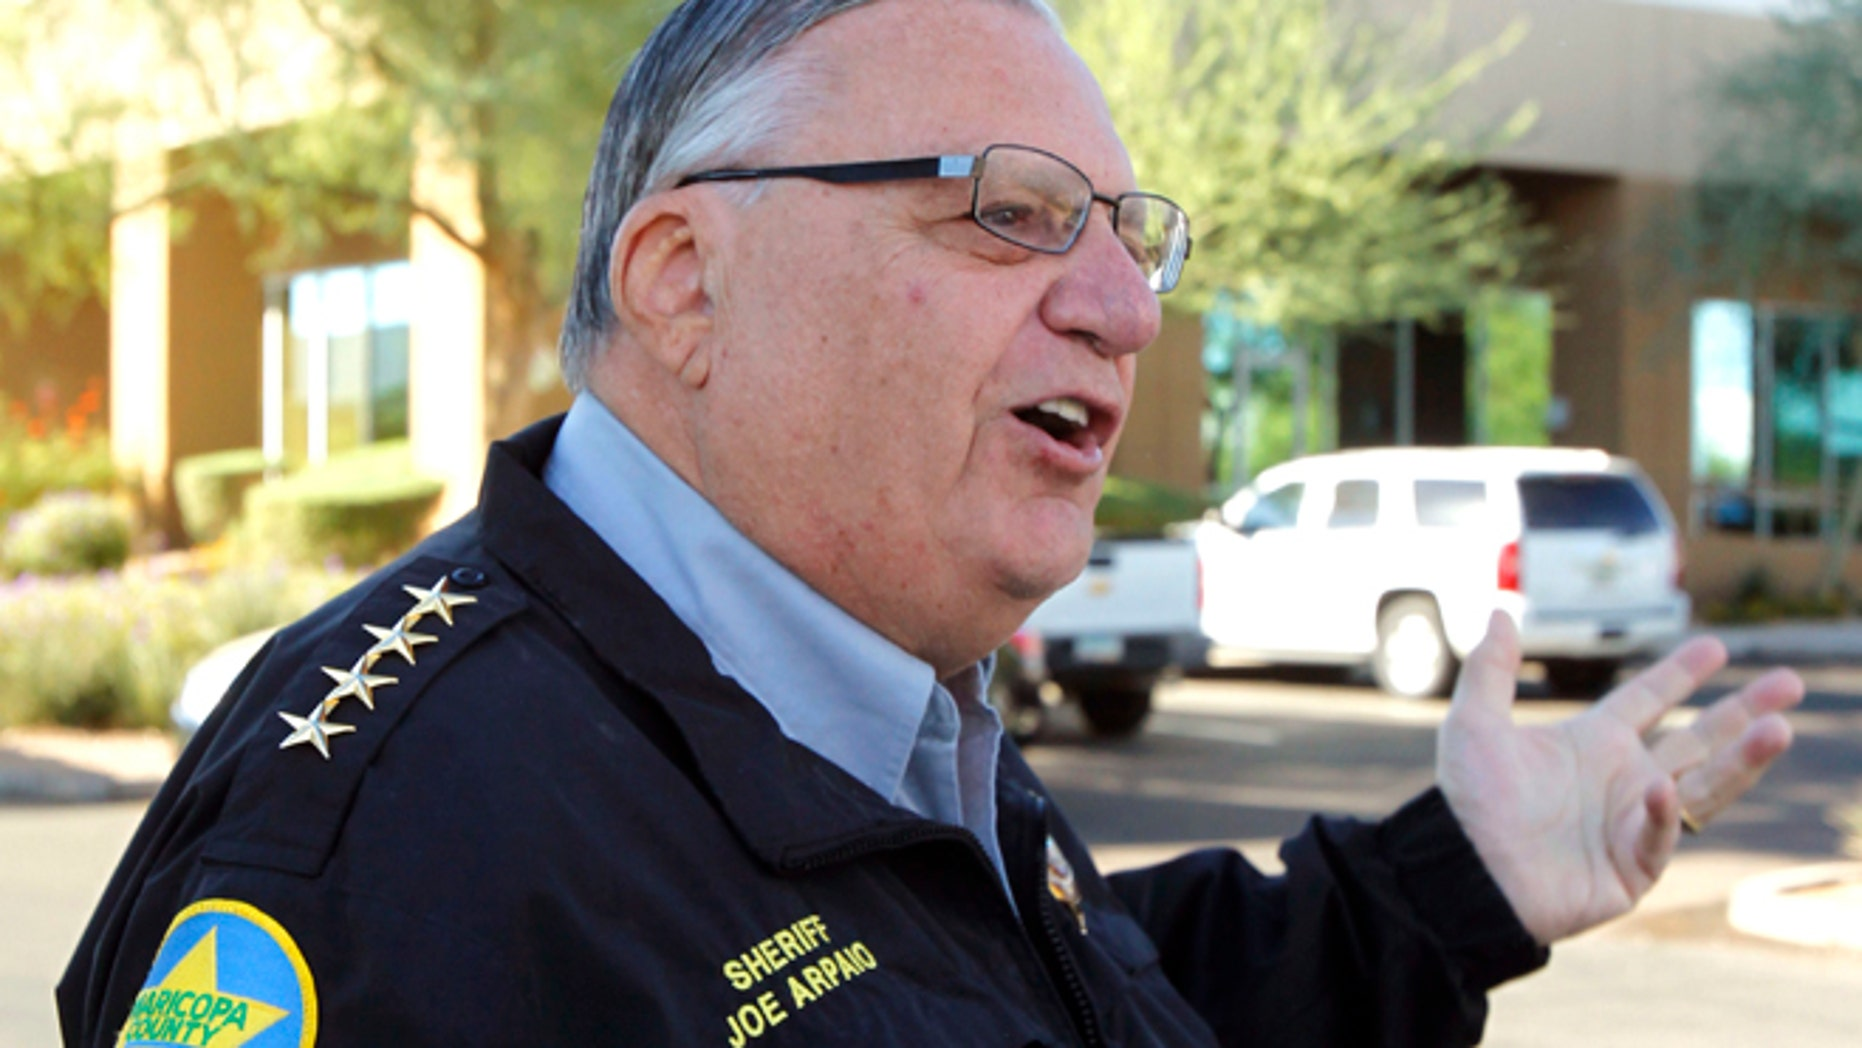 Maricopa County Sheriff Joe Arpaio speaks to the media on Nov. 1, 2011. (AP Photo/Ross D. Franklin, File)